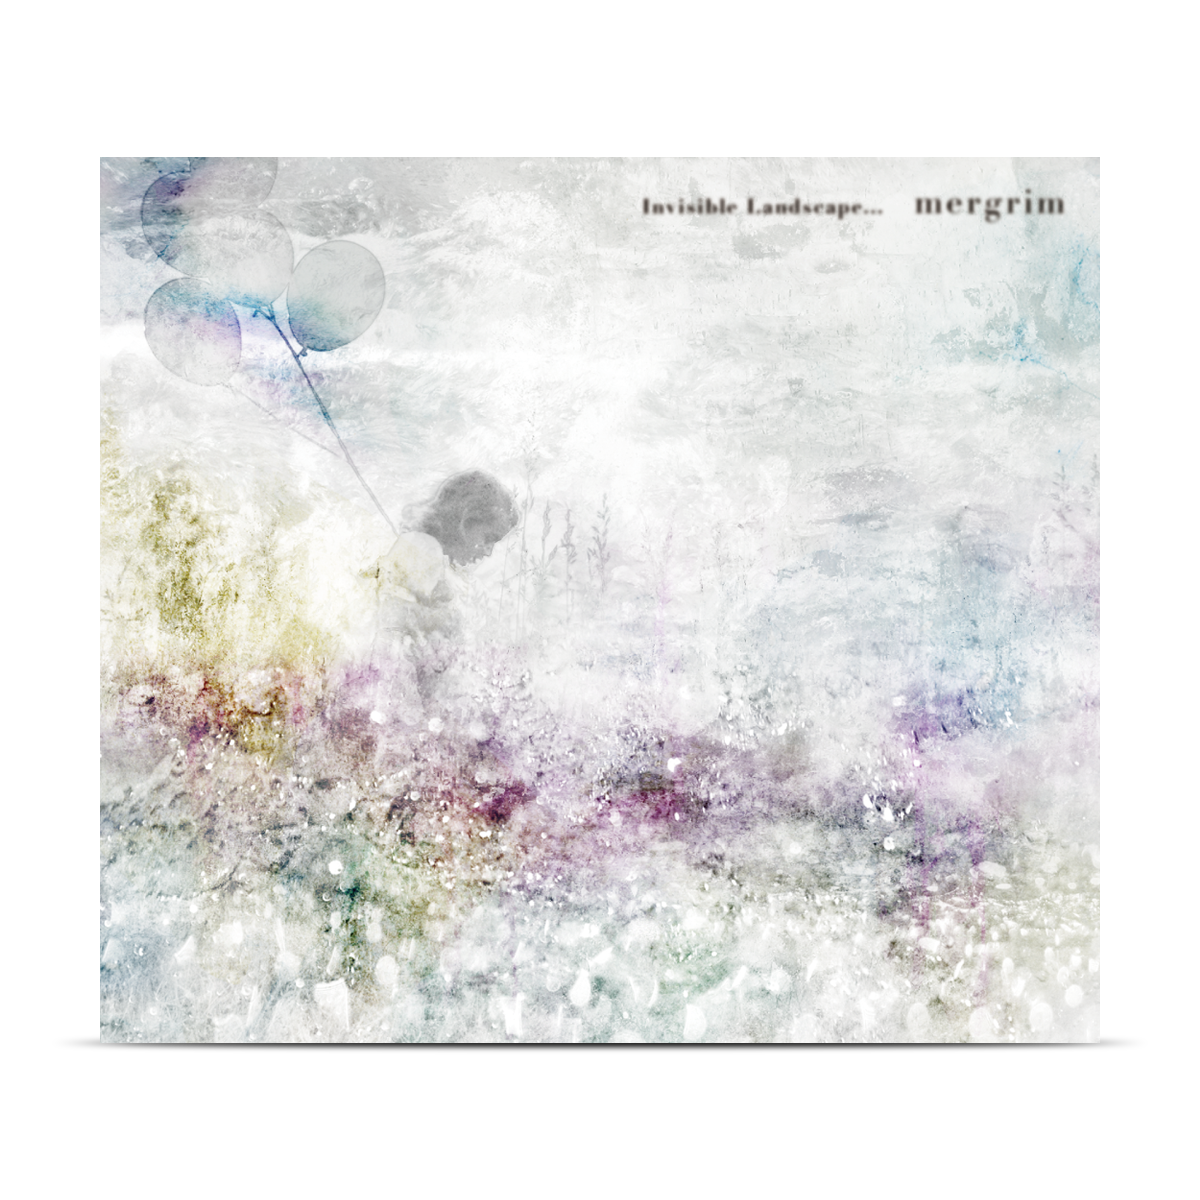 Invisible Landscape / mergrim